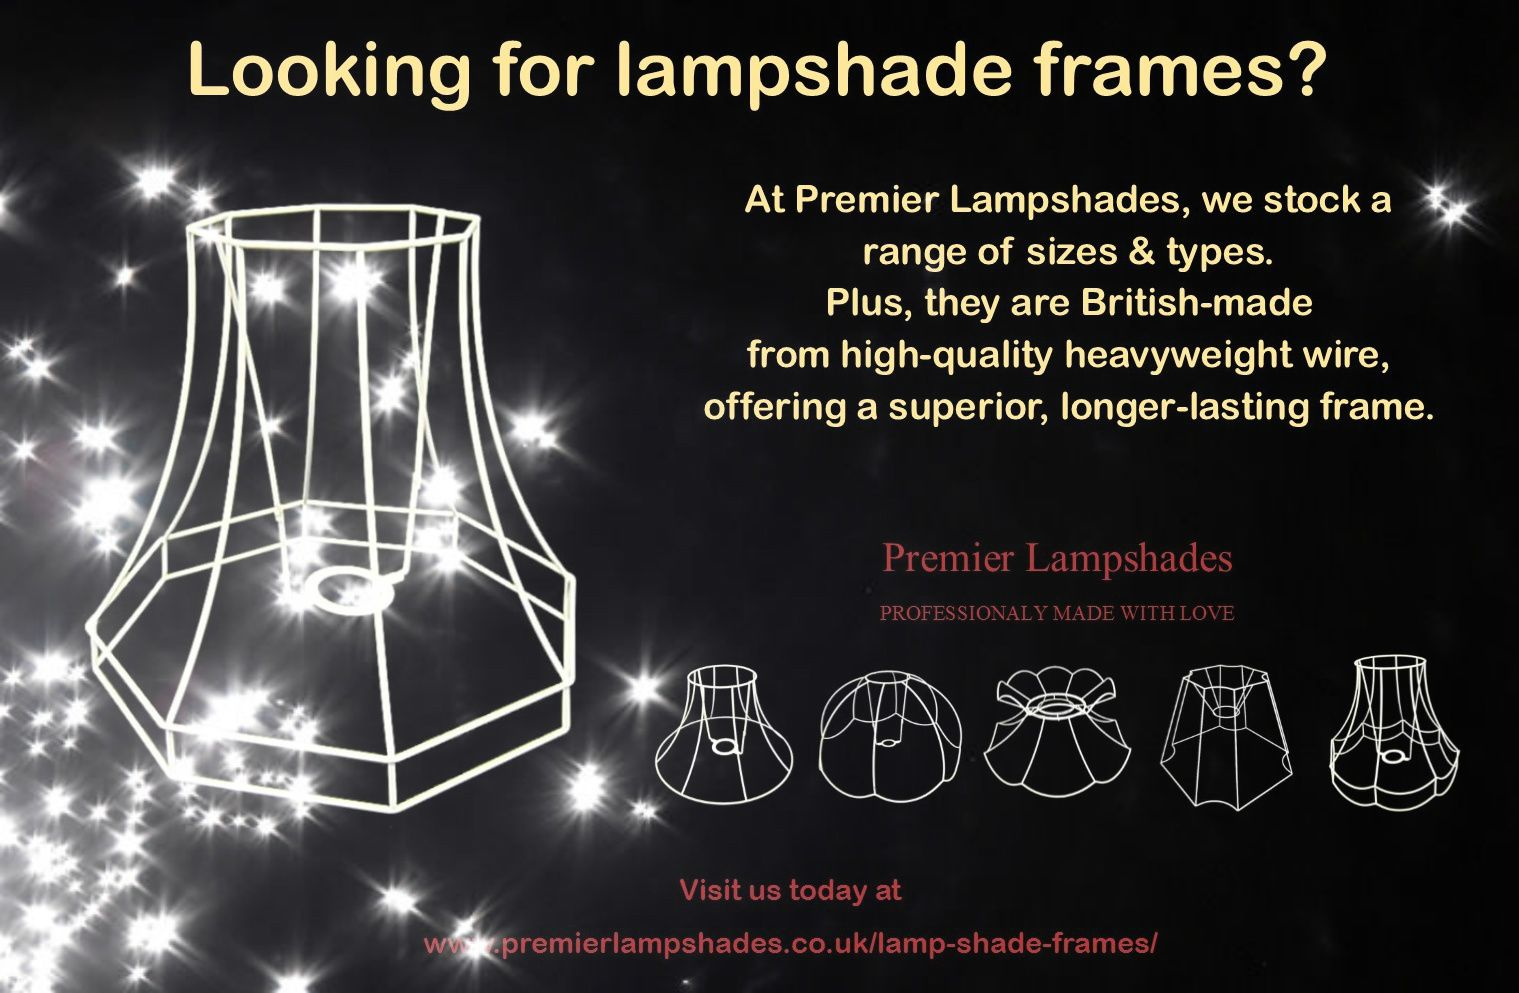 If you are looking for lampshade frames for a new lighting project if you are looking for lampshade frames for a new lighting project we can help greentooth